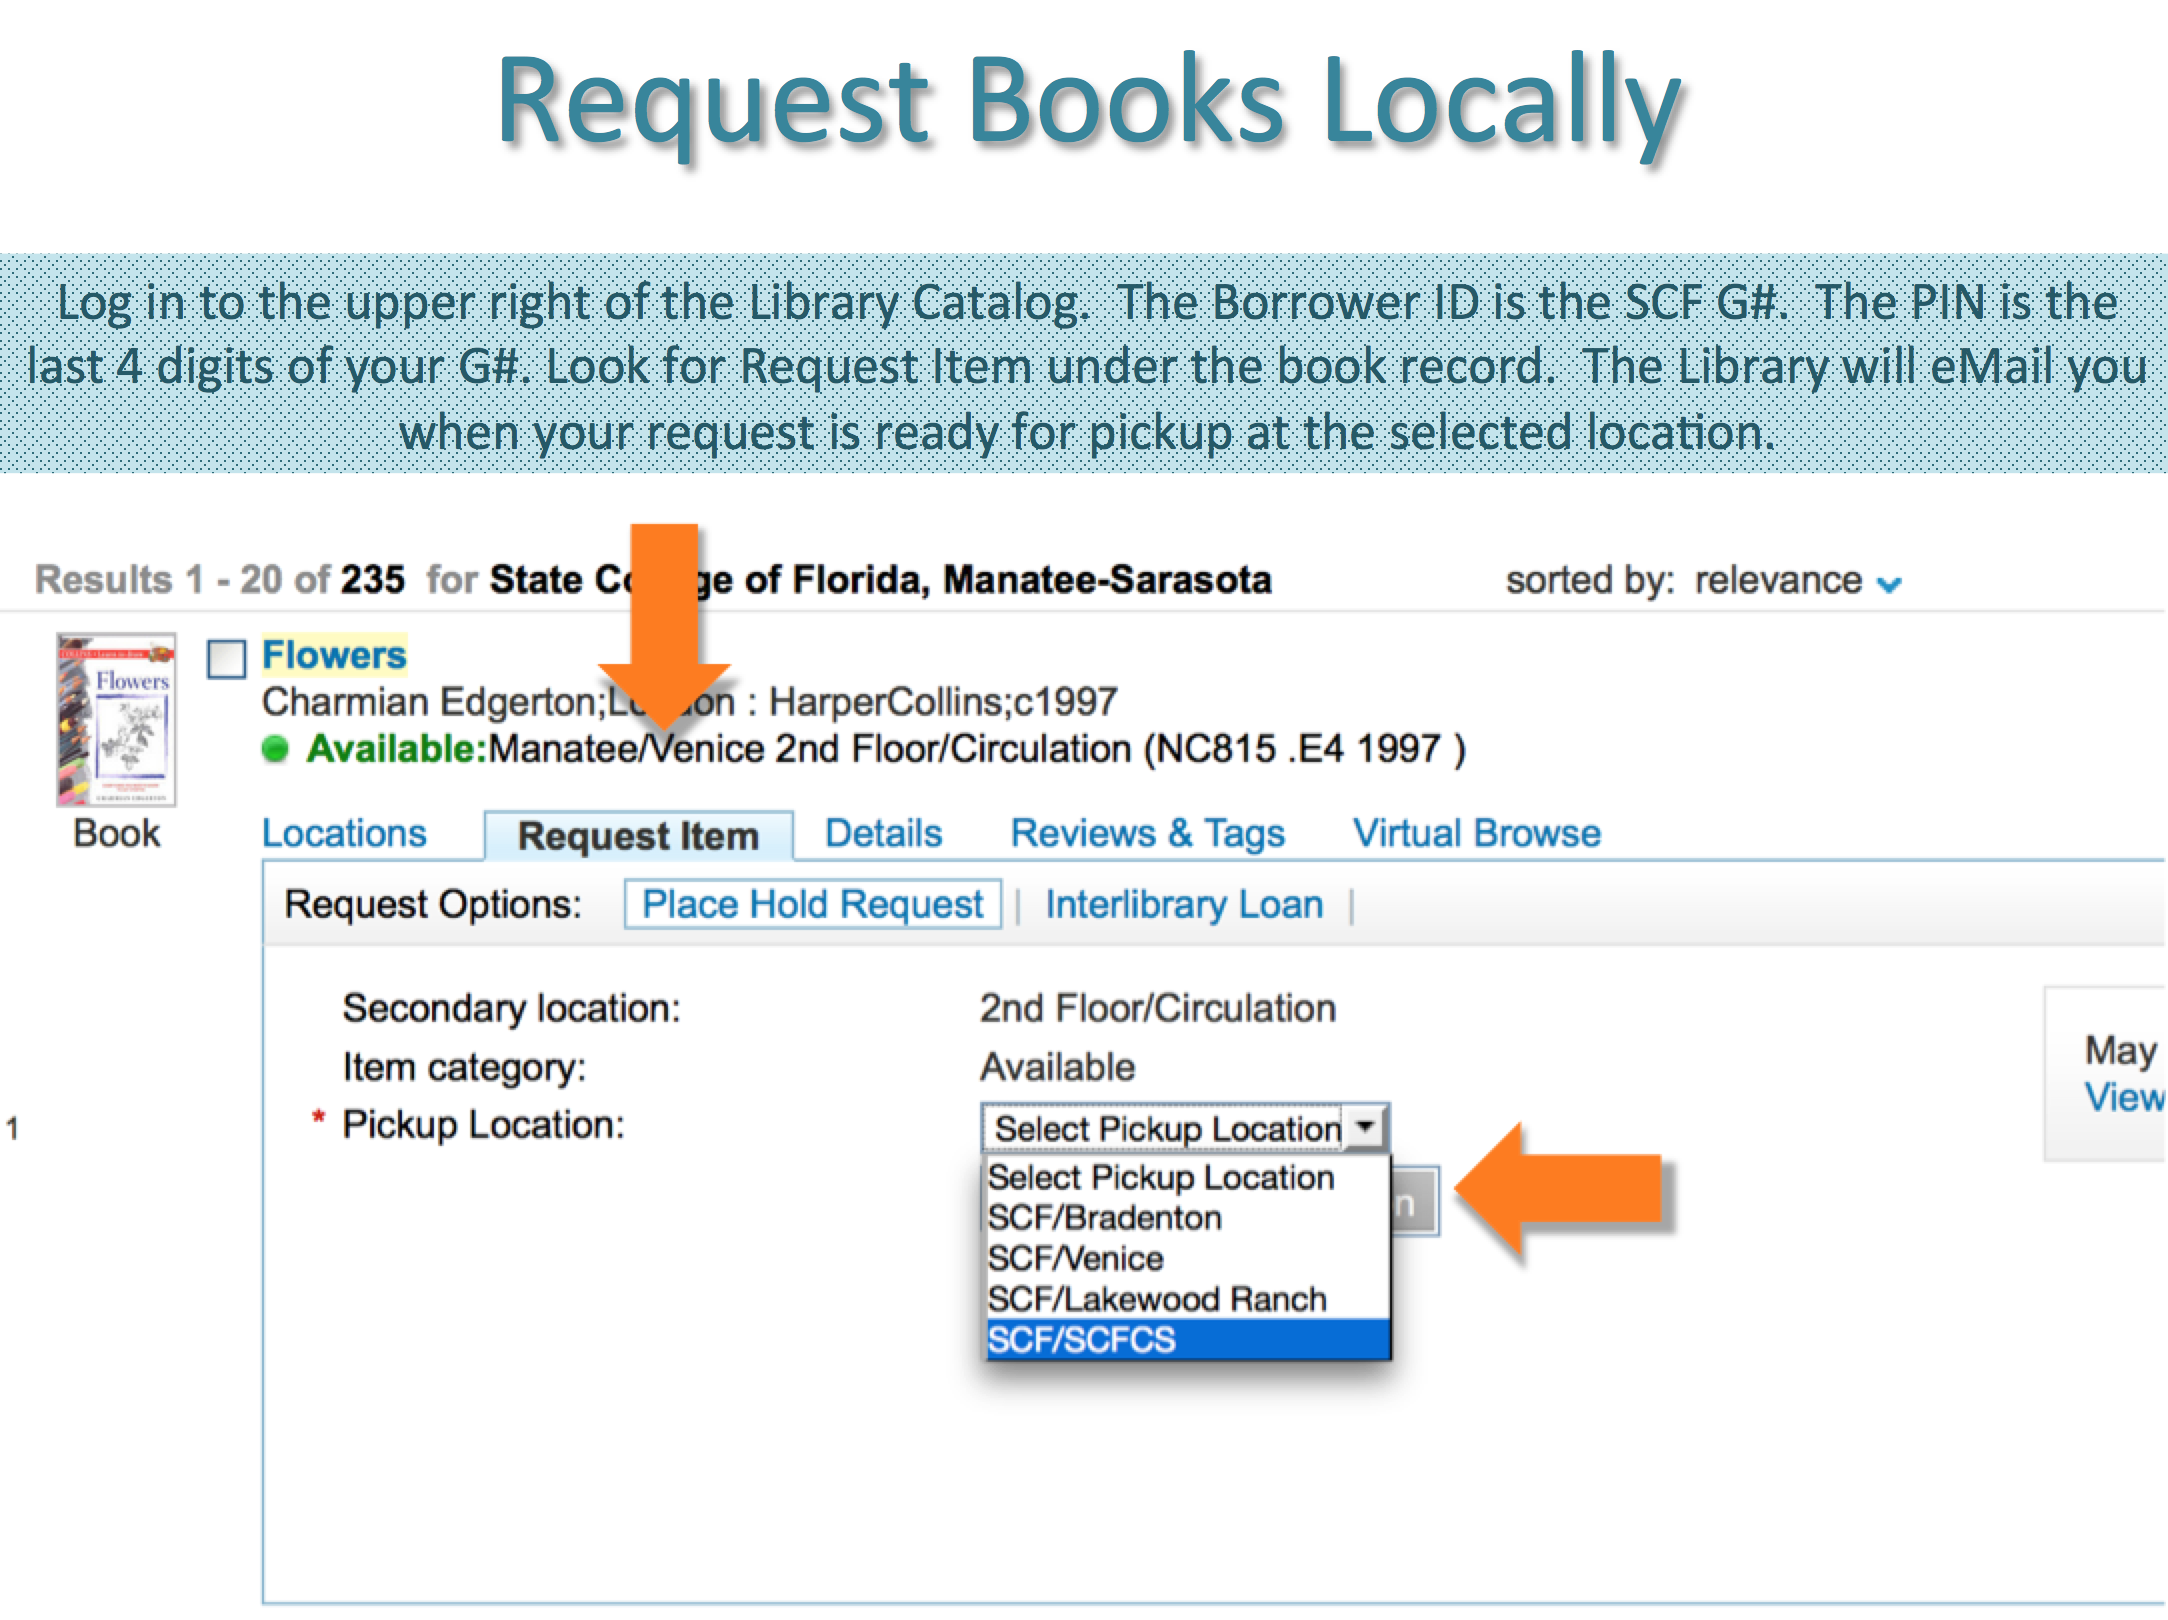 Go to Request after logging in at scf.edu/library